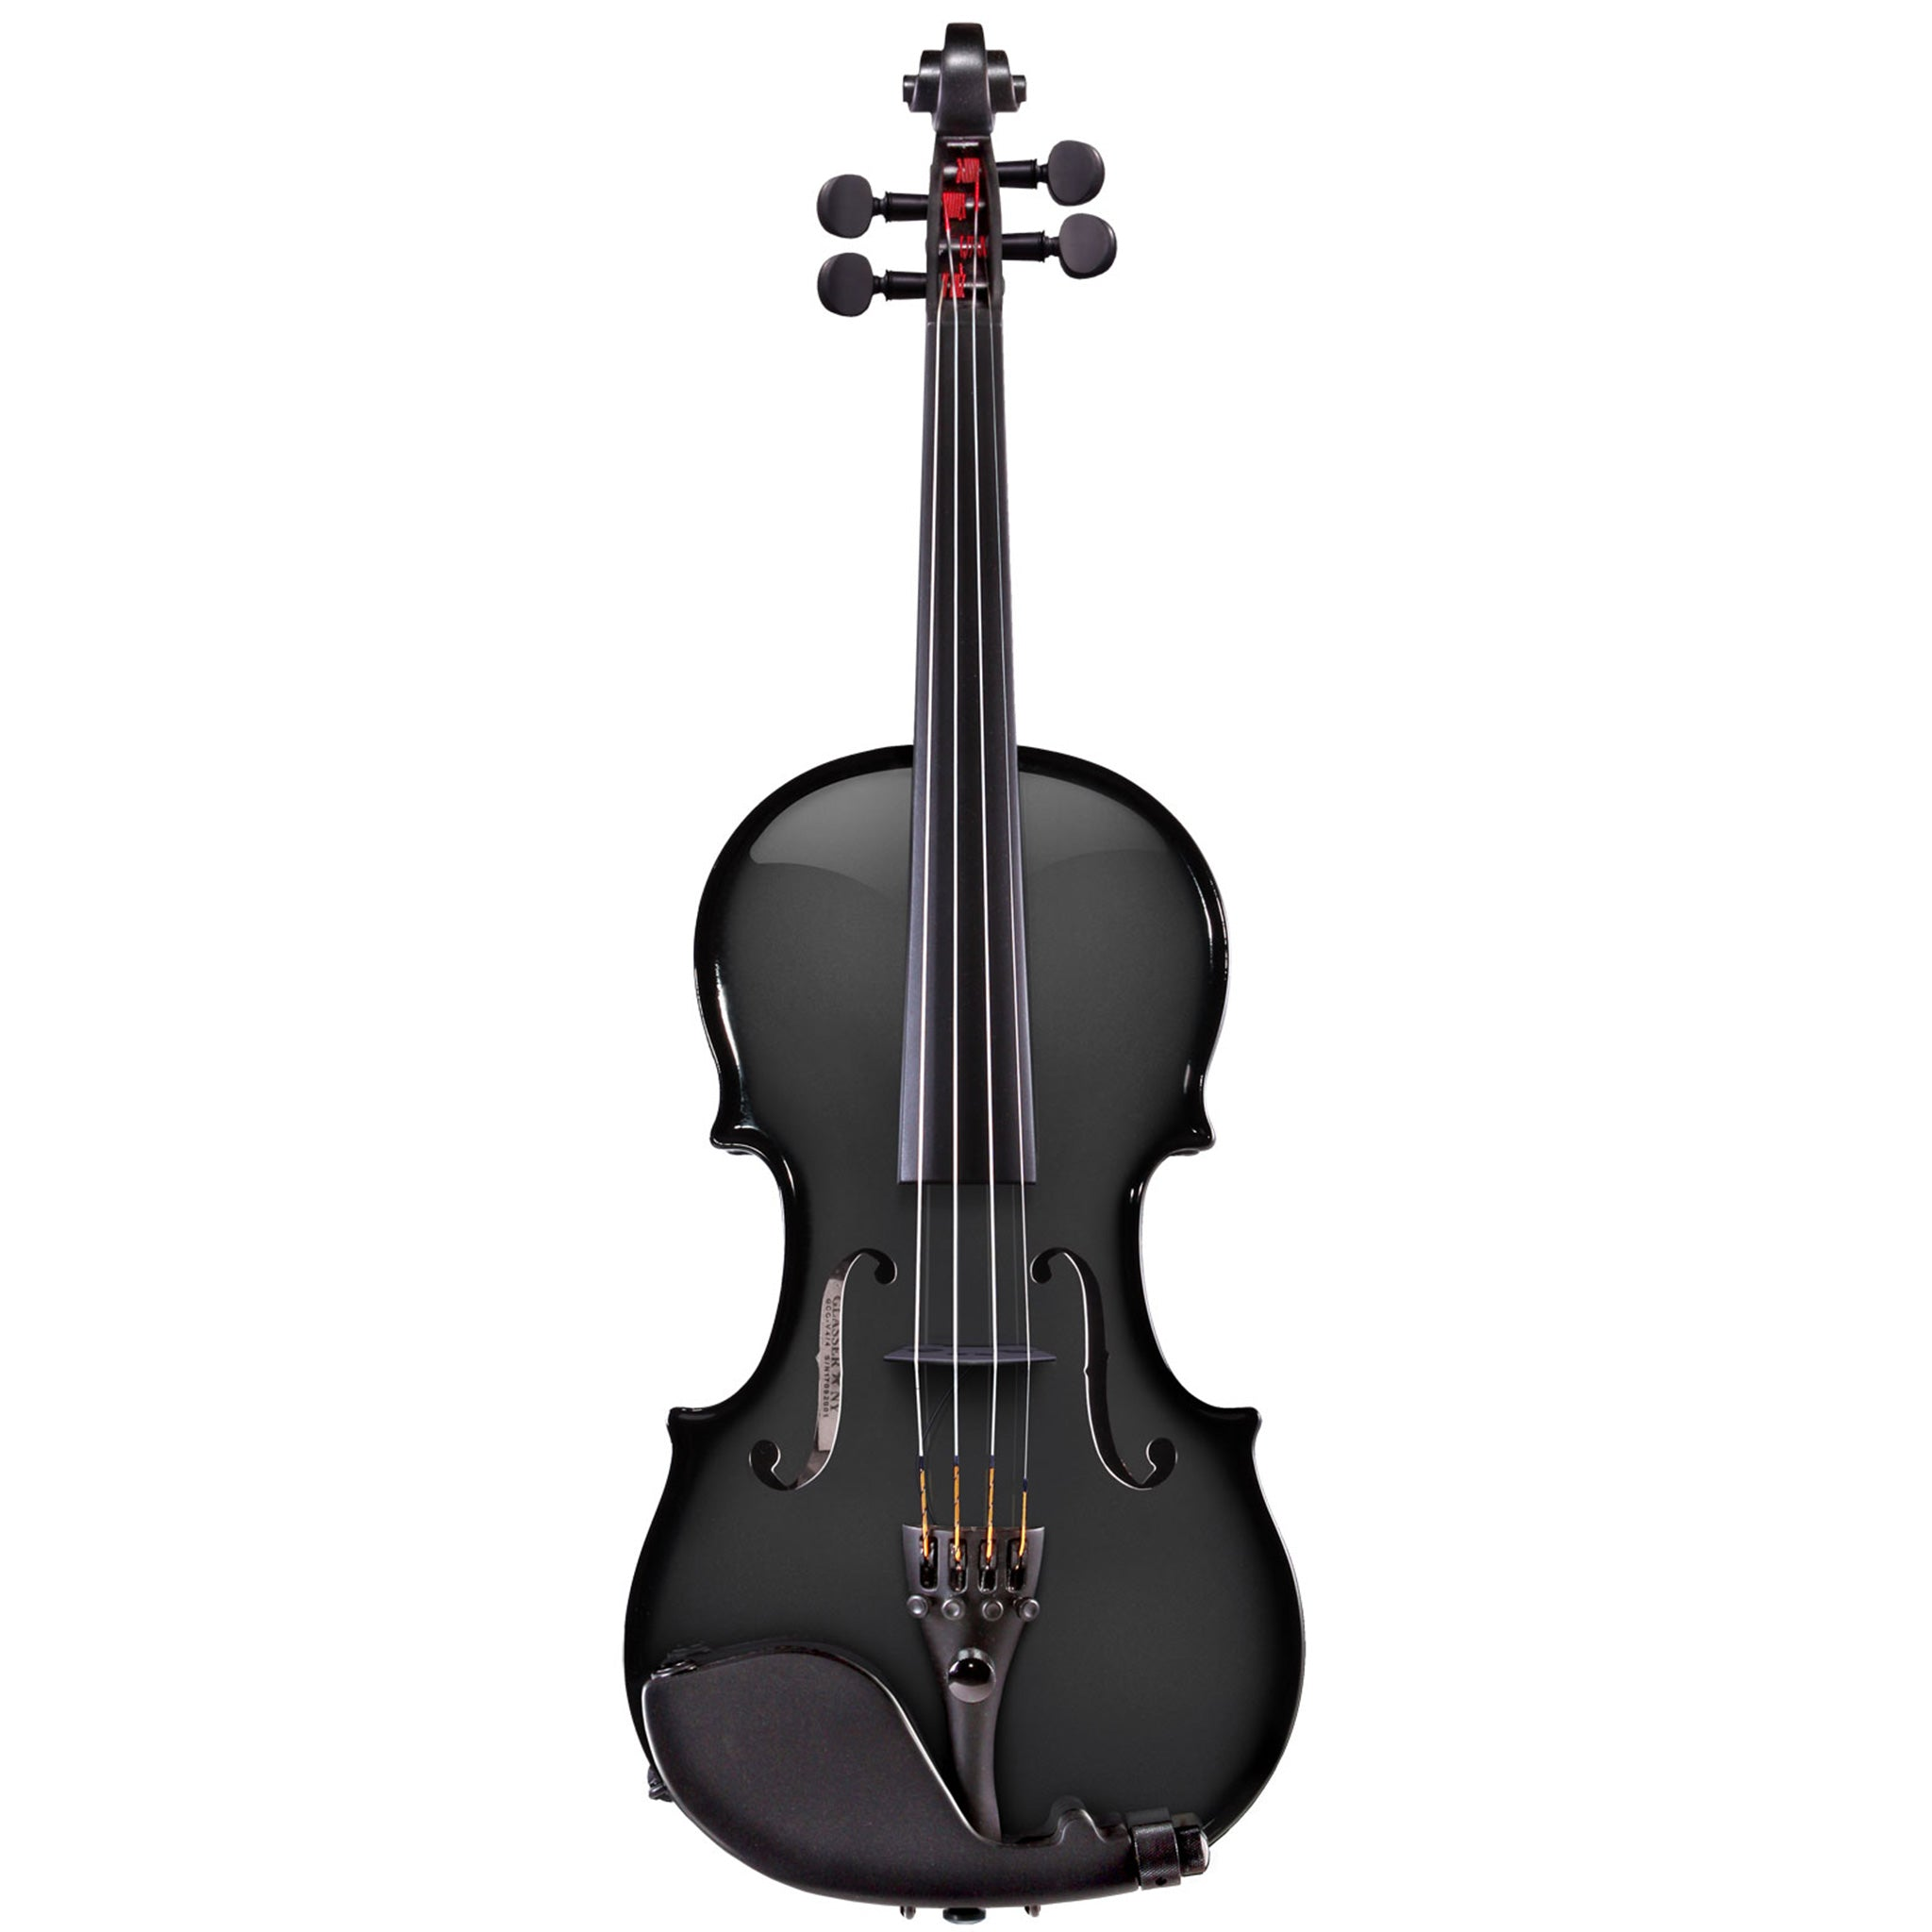 Glasser AEX Carbon Composite Acoustic-Electric Violin